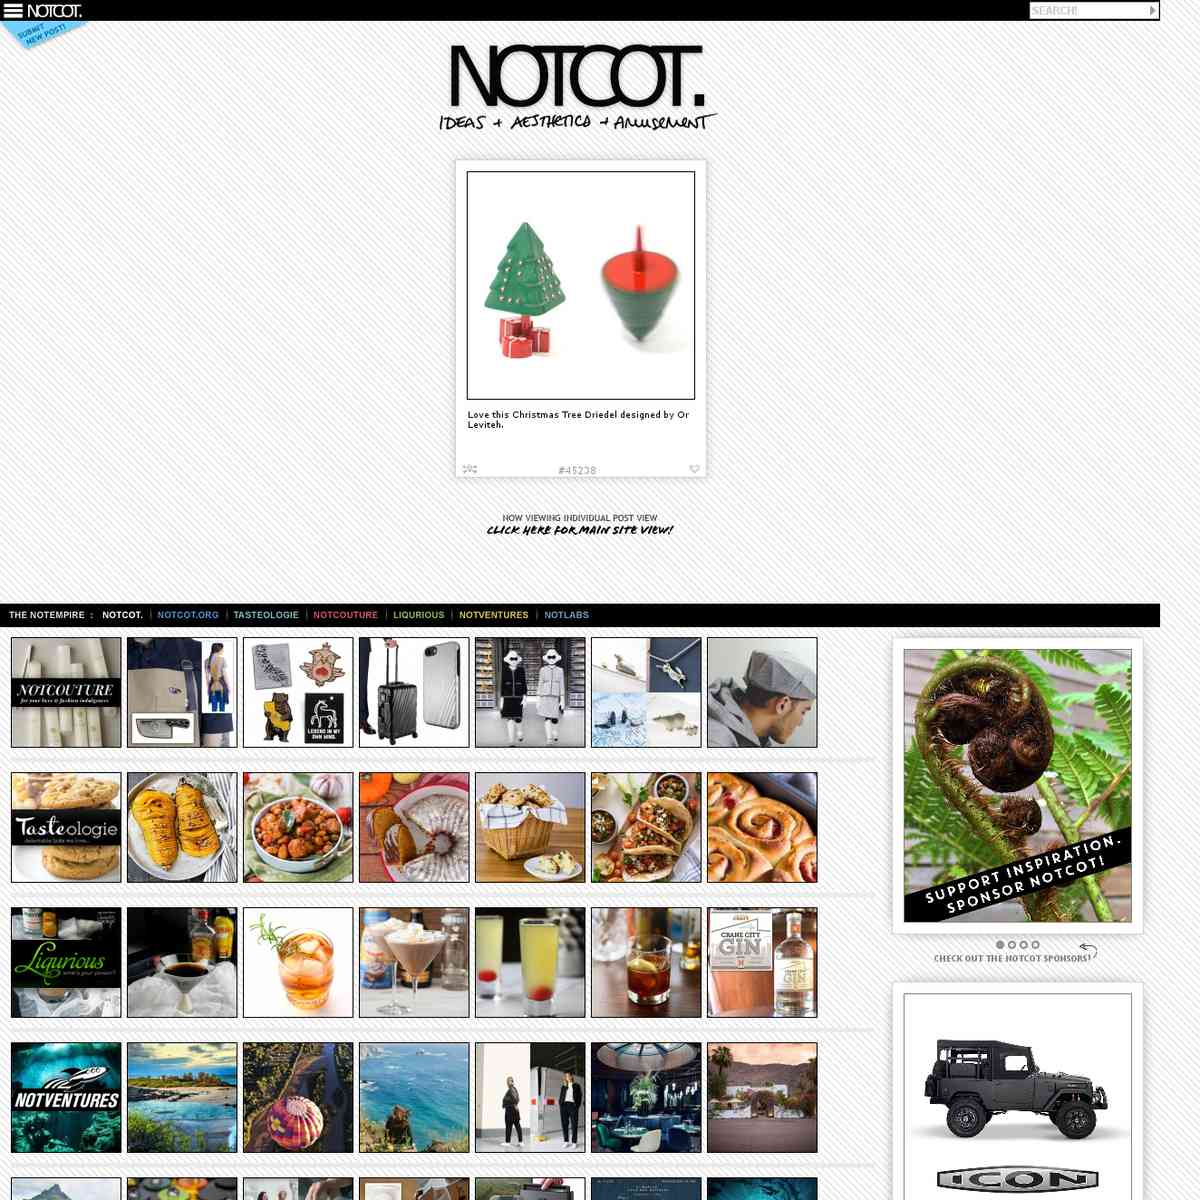 notcot.org/post/45238/Love-this-Christmas-Tree-Driedel-designed-by-Or-Leviteh/